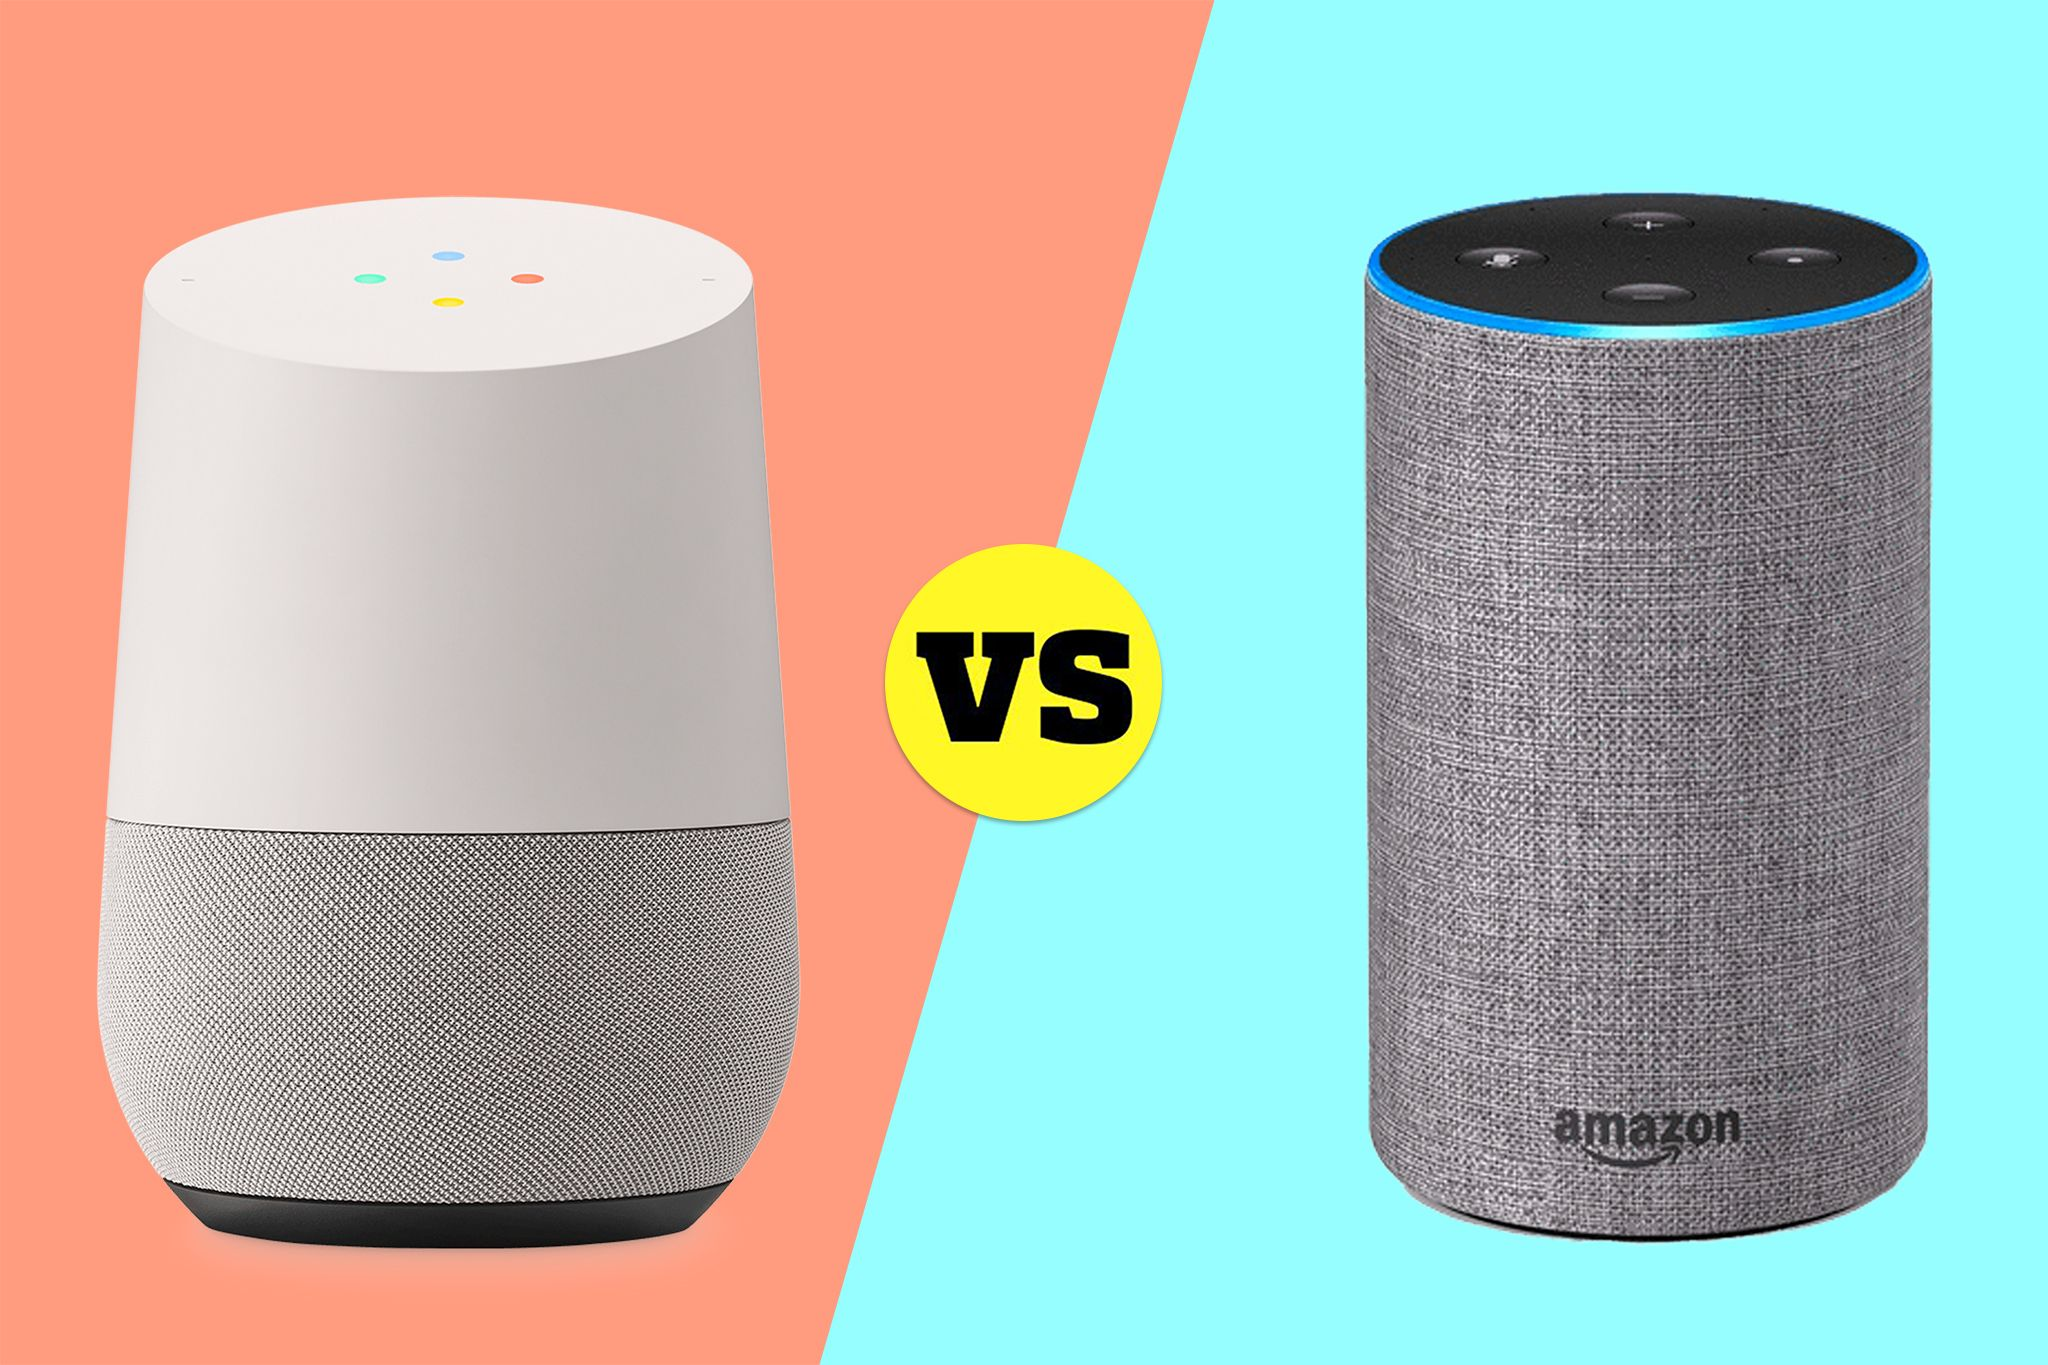 Should I Buy a Google Home or Amazon Echo?